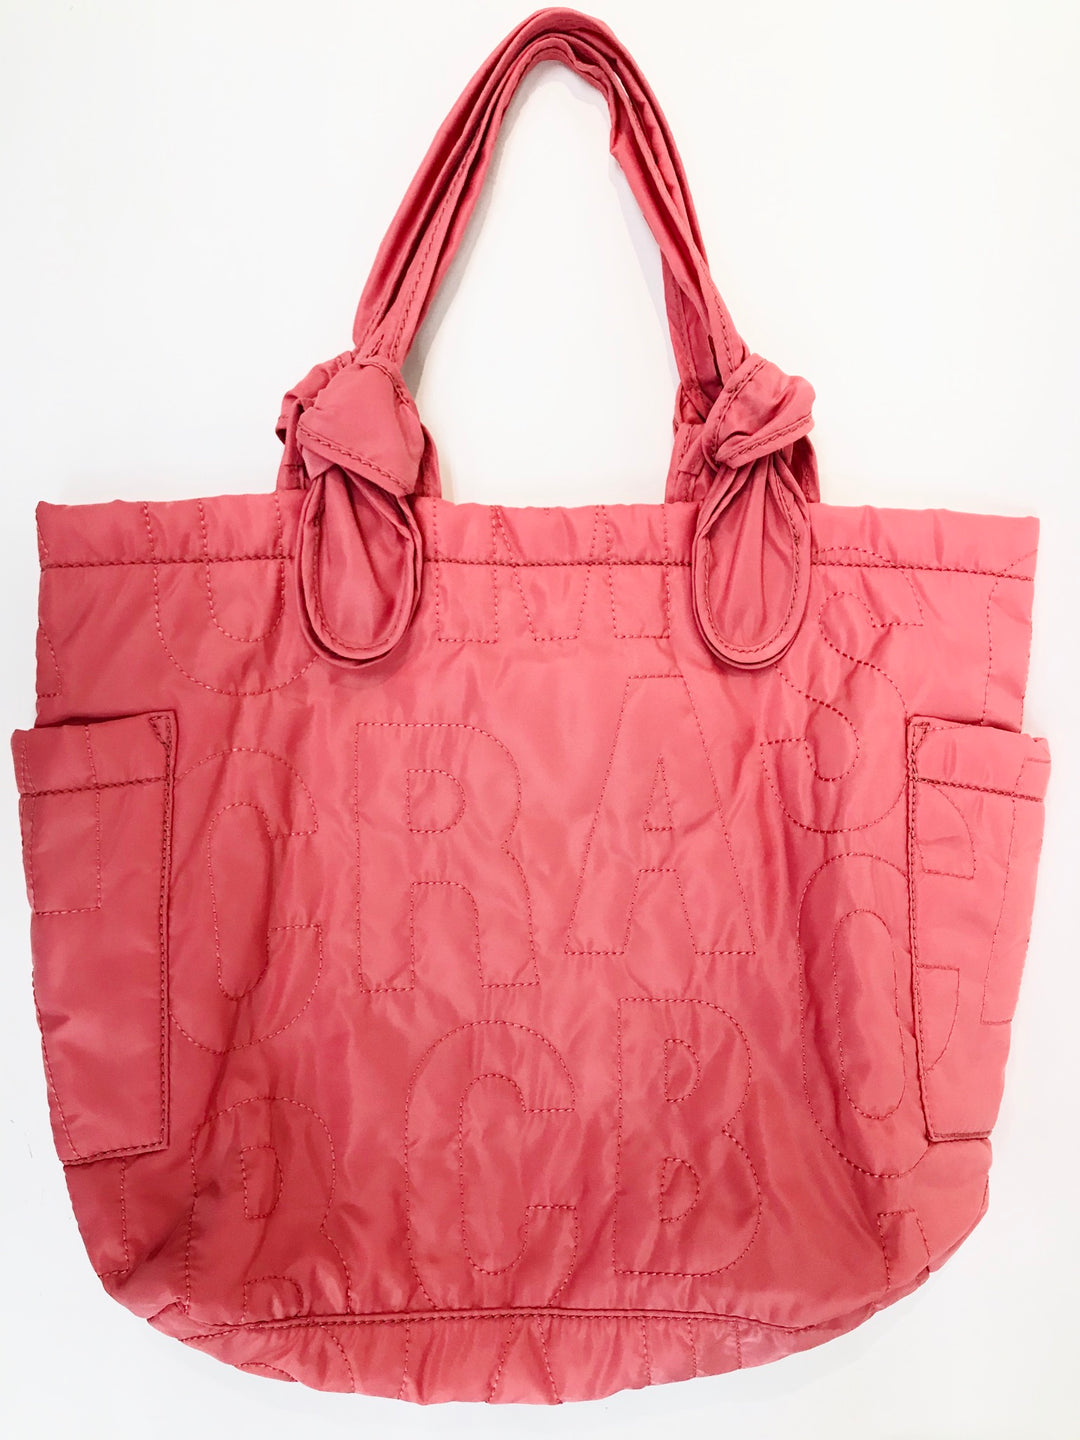 Photo #1 - BRAND: MARC BY MARC JACOBS <BR>STYLE: HANDBAG DESIGNER <BR>COLOR: PEACH <BR>SIZE: LARGE <BR>SKU: 262-26211-123319<BR>-NEW WITHOUT TAG-<BR>DESIGNER BRAND-FINAL SALE<BR>